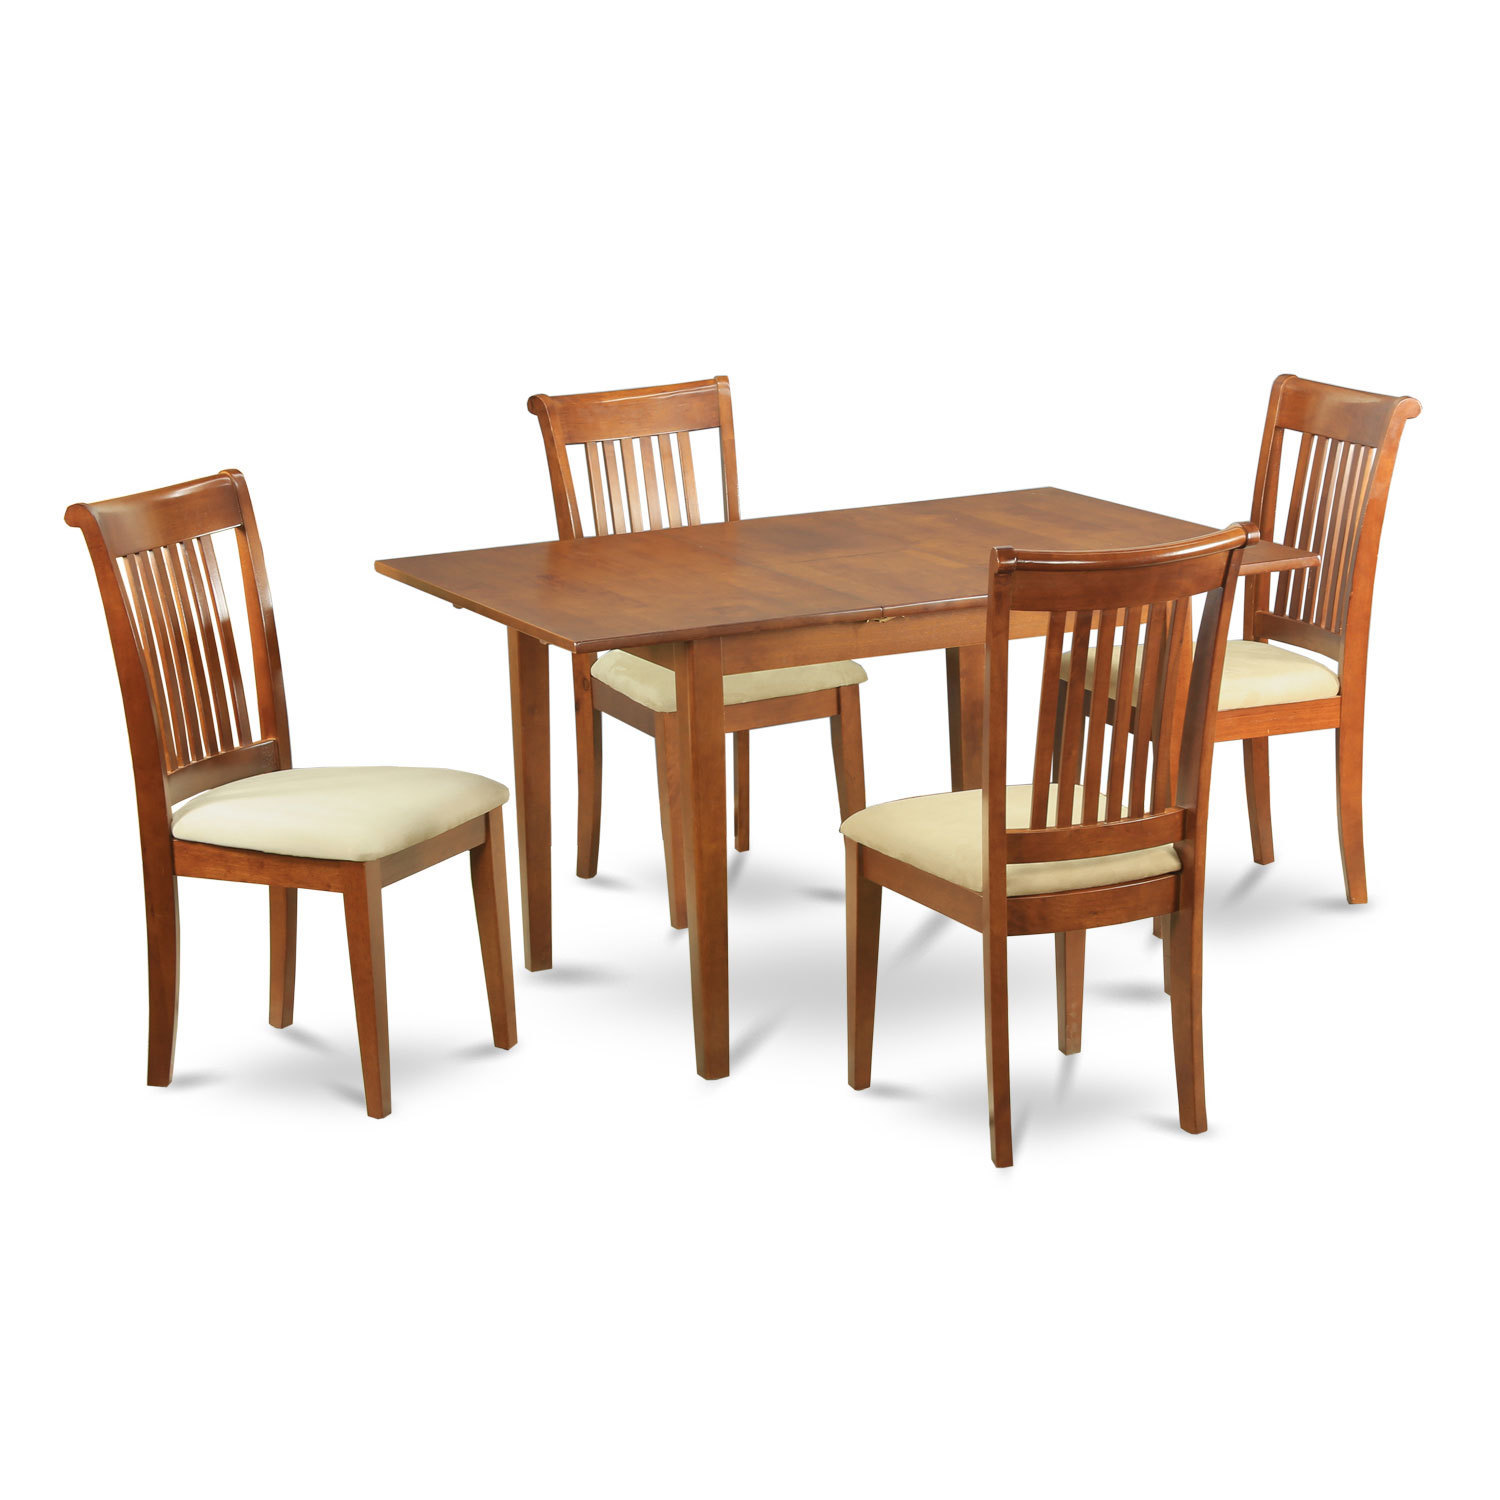 Small dinette set design homesfeed Dining room table and chairs